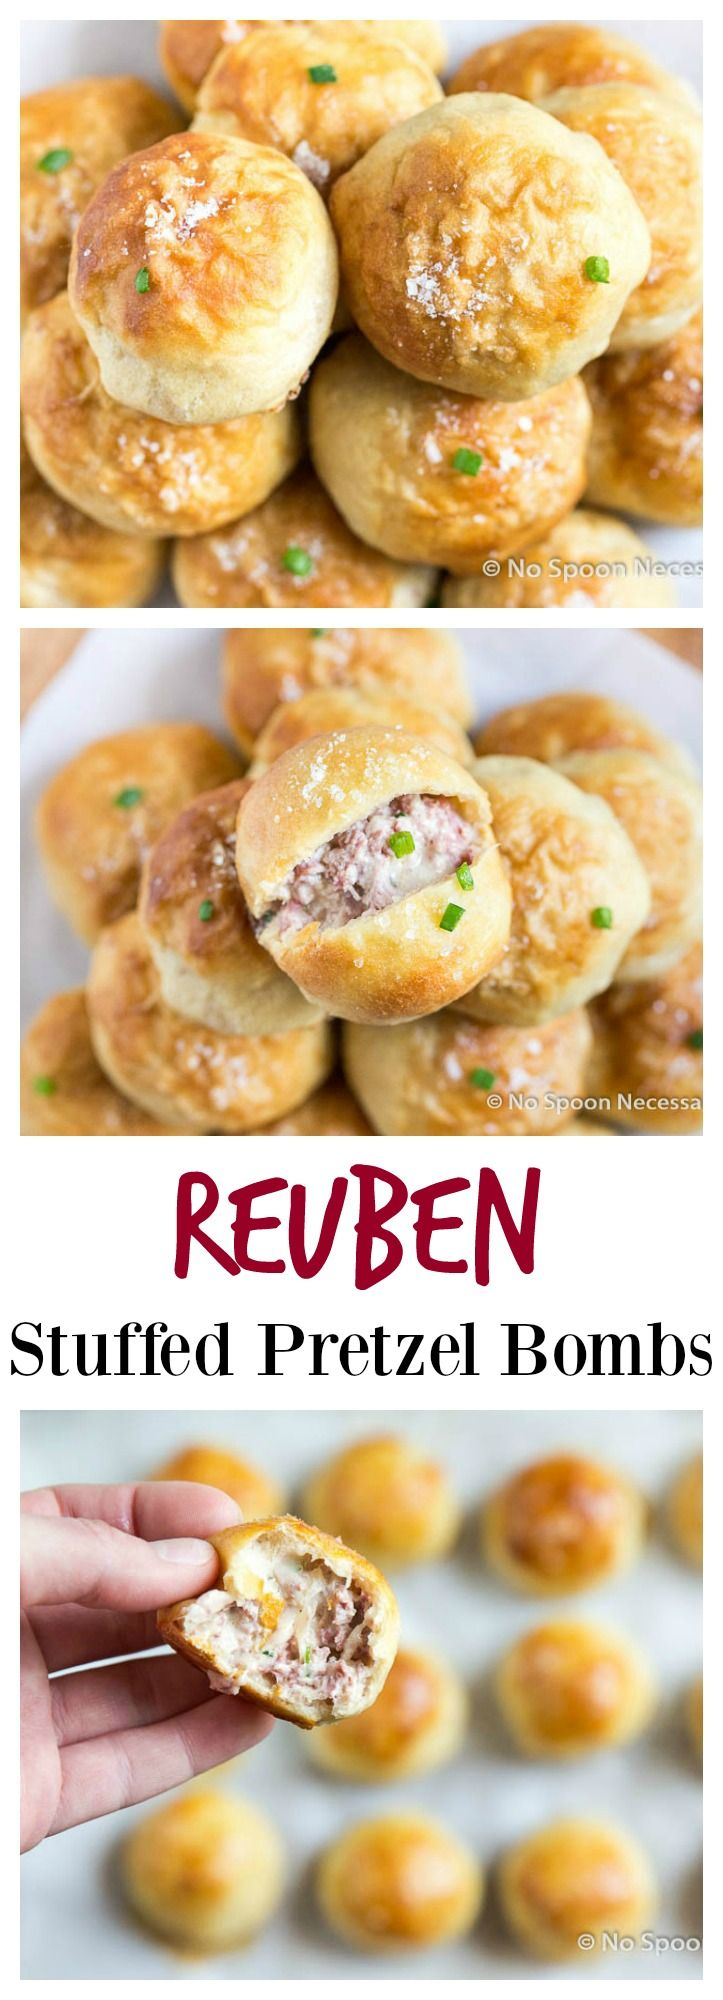 Reuben Stuffed Pretzel Bombs